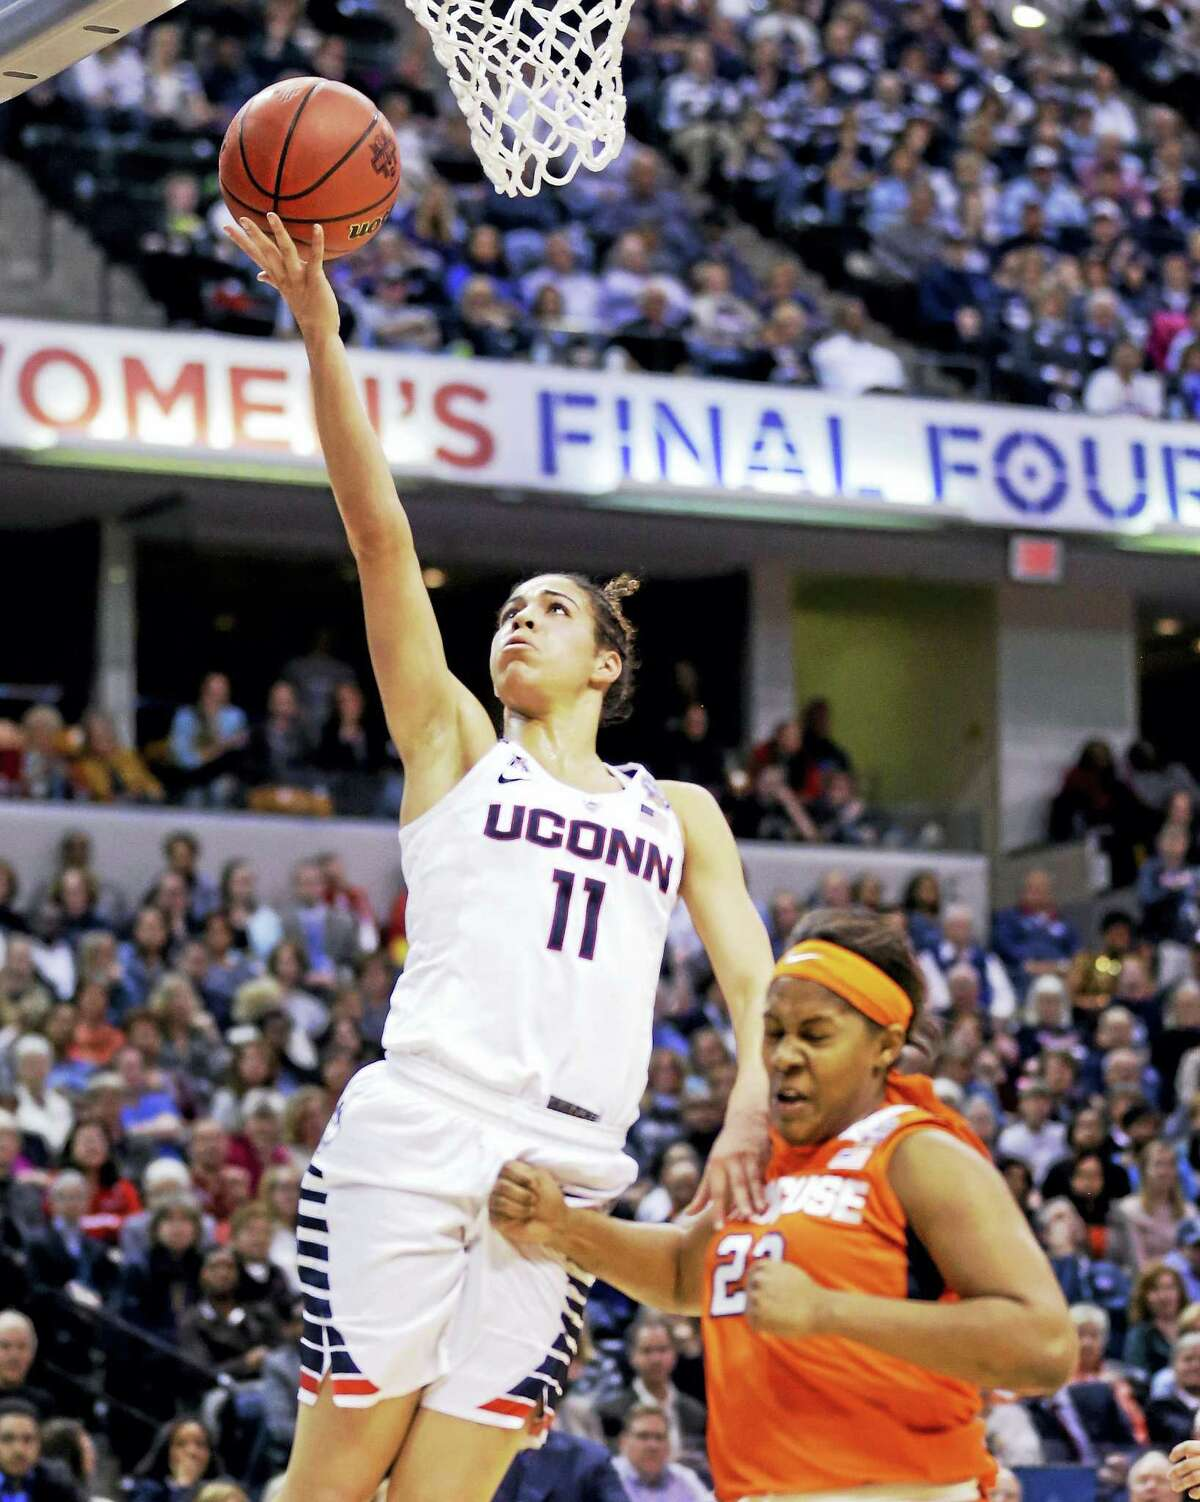 UConn's Kia Nurse is recovering from sports hernia surgery according to a report.